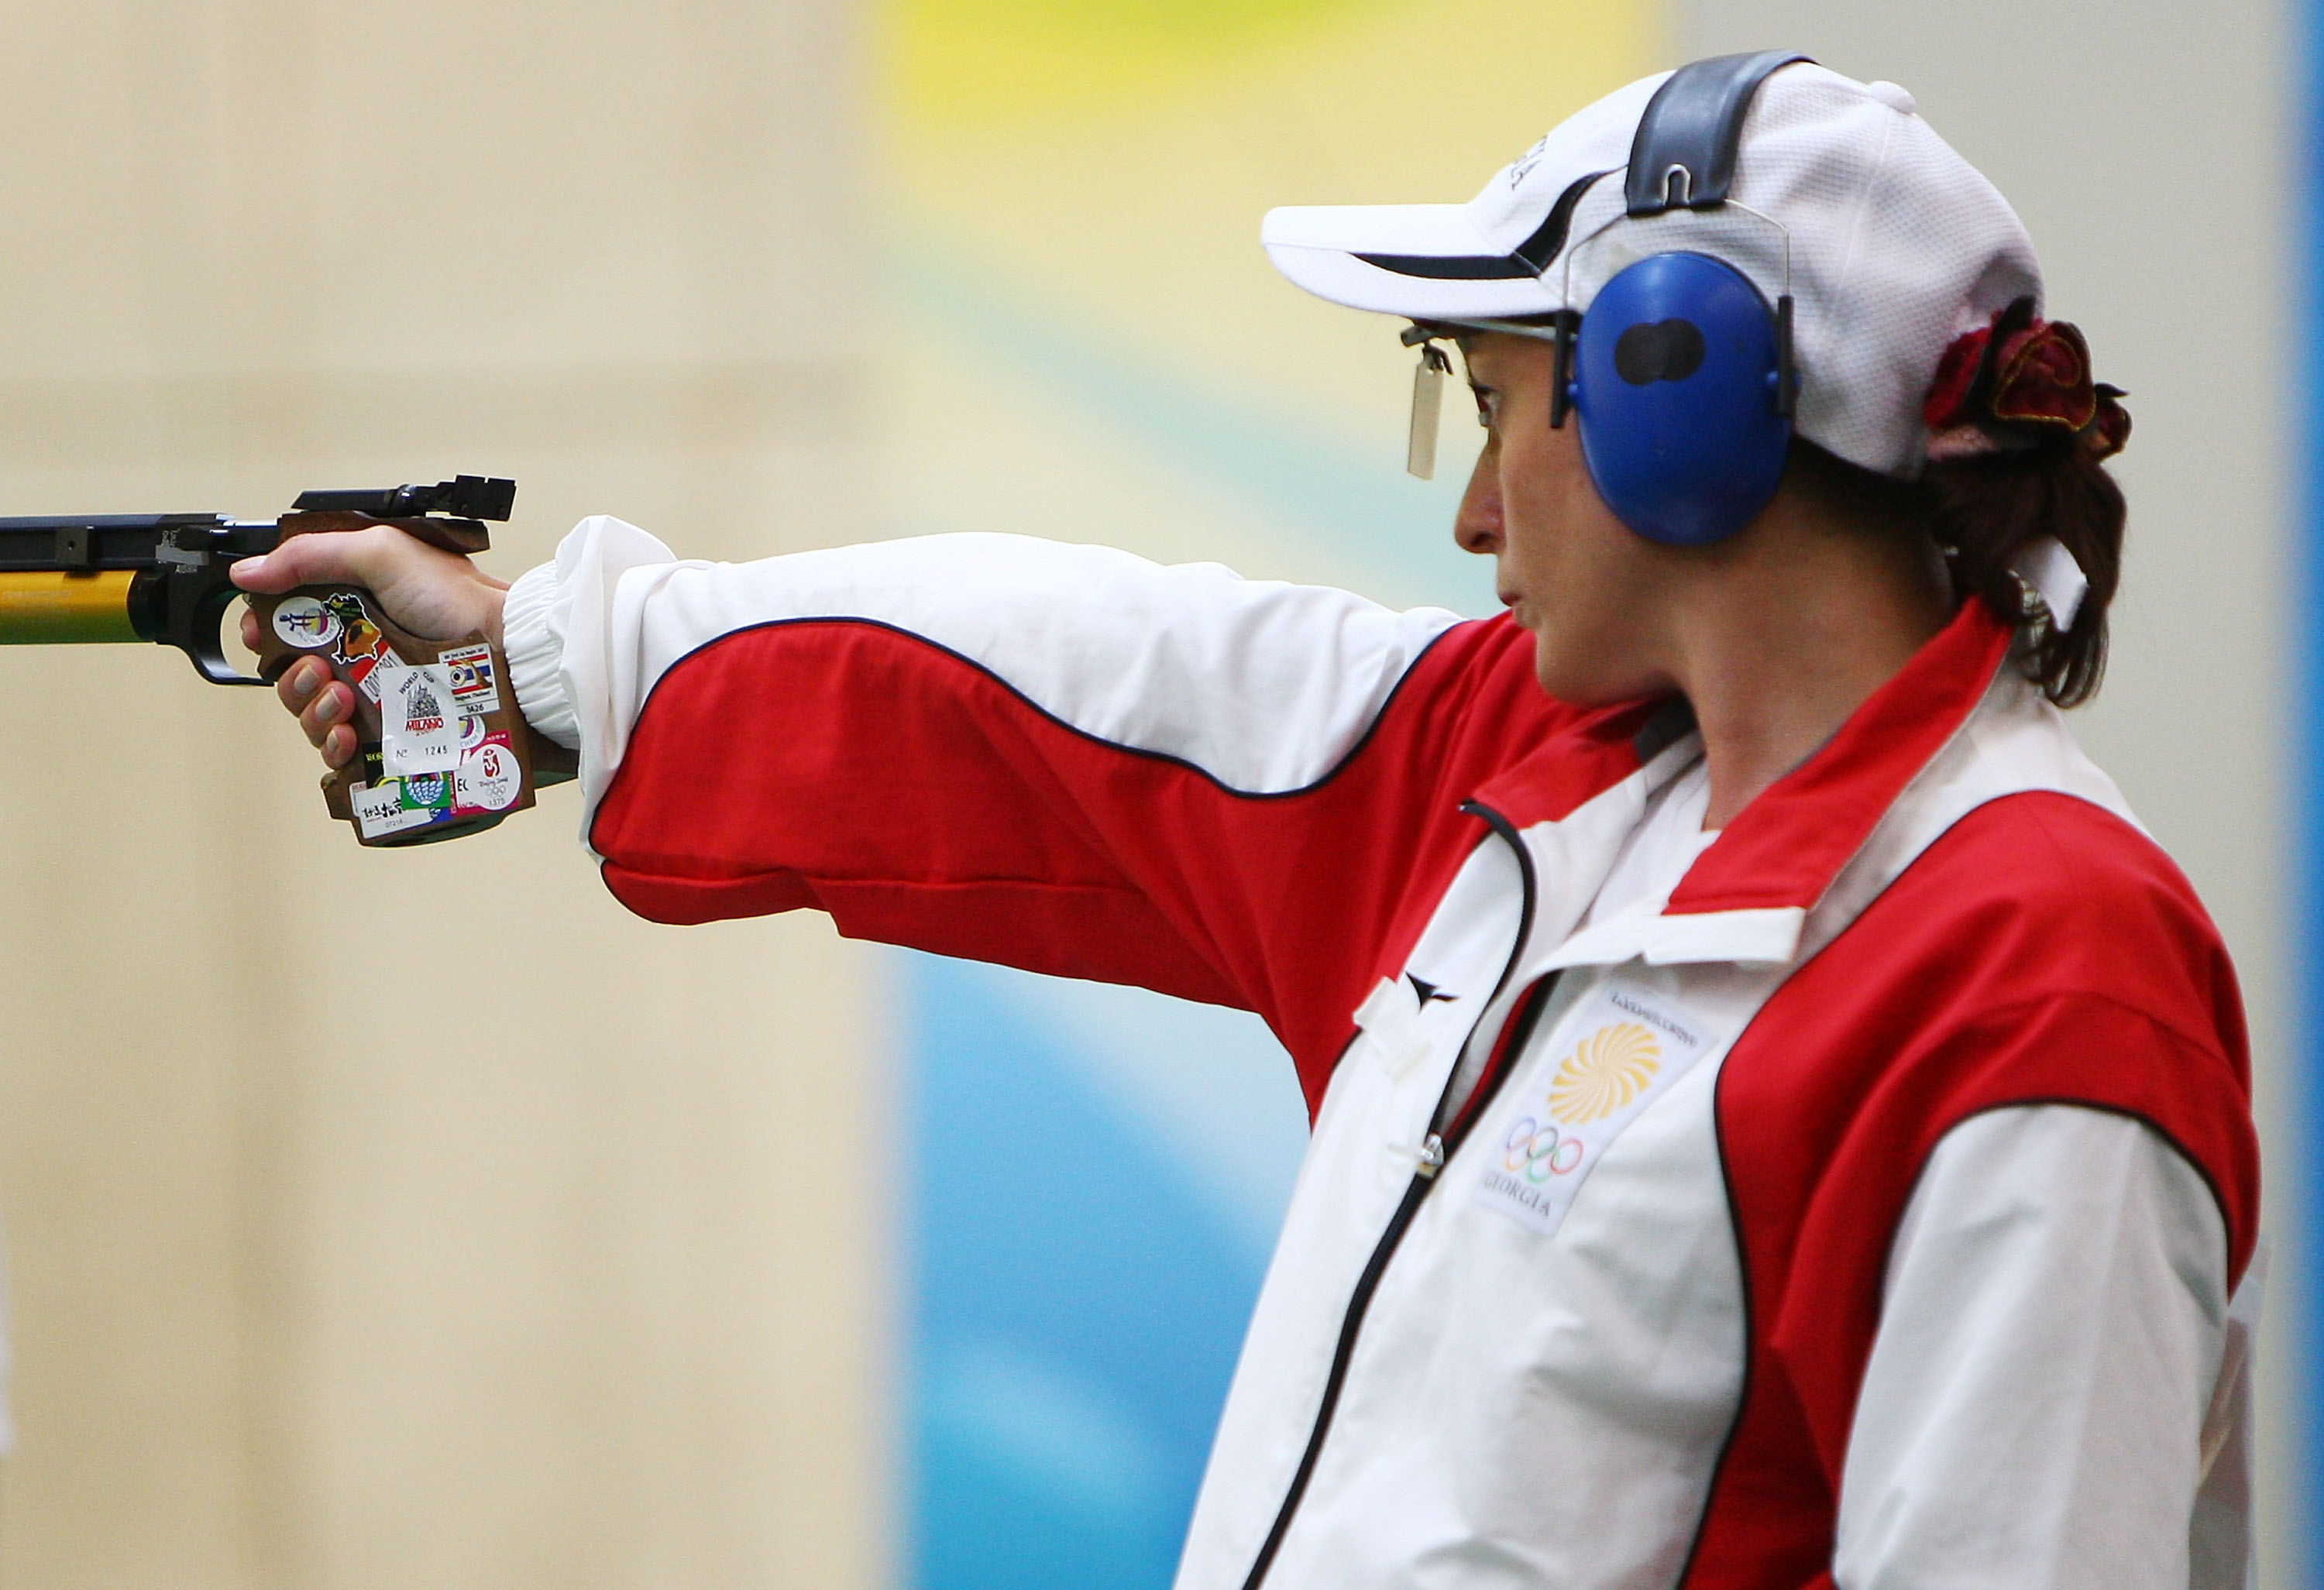 BEIJING - AUGUST 10: Nino Salukvadze of Georgia competes in the women's 10m air pistol final shooting event held at the Beijing Shooting Range Hall during Day 2 of the 2008 Beijing Summer Olympic Games on August 10, 2008 in Beijing, China. Salukvadze finished third to win the bronze medal. (Photo by Clive Brunskill/Getty Images)